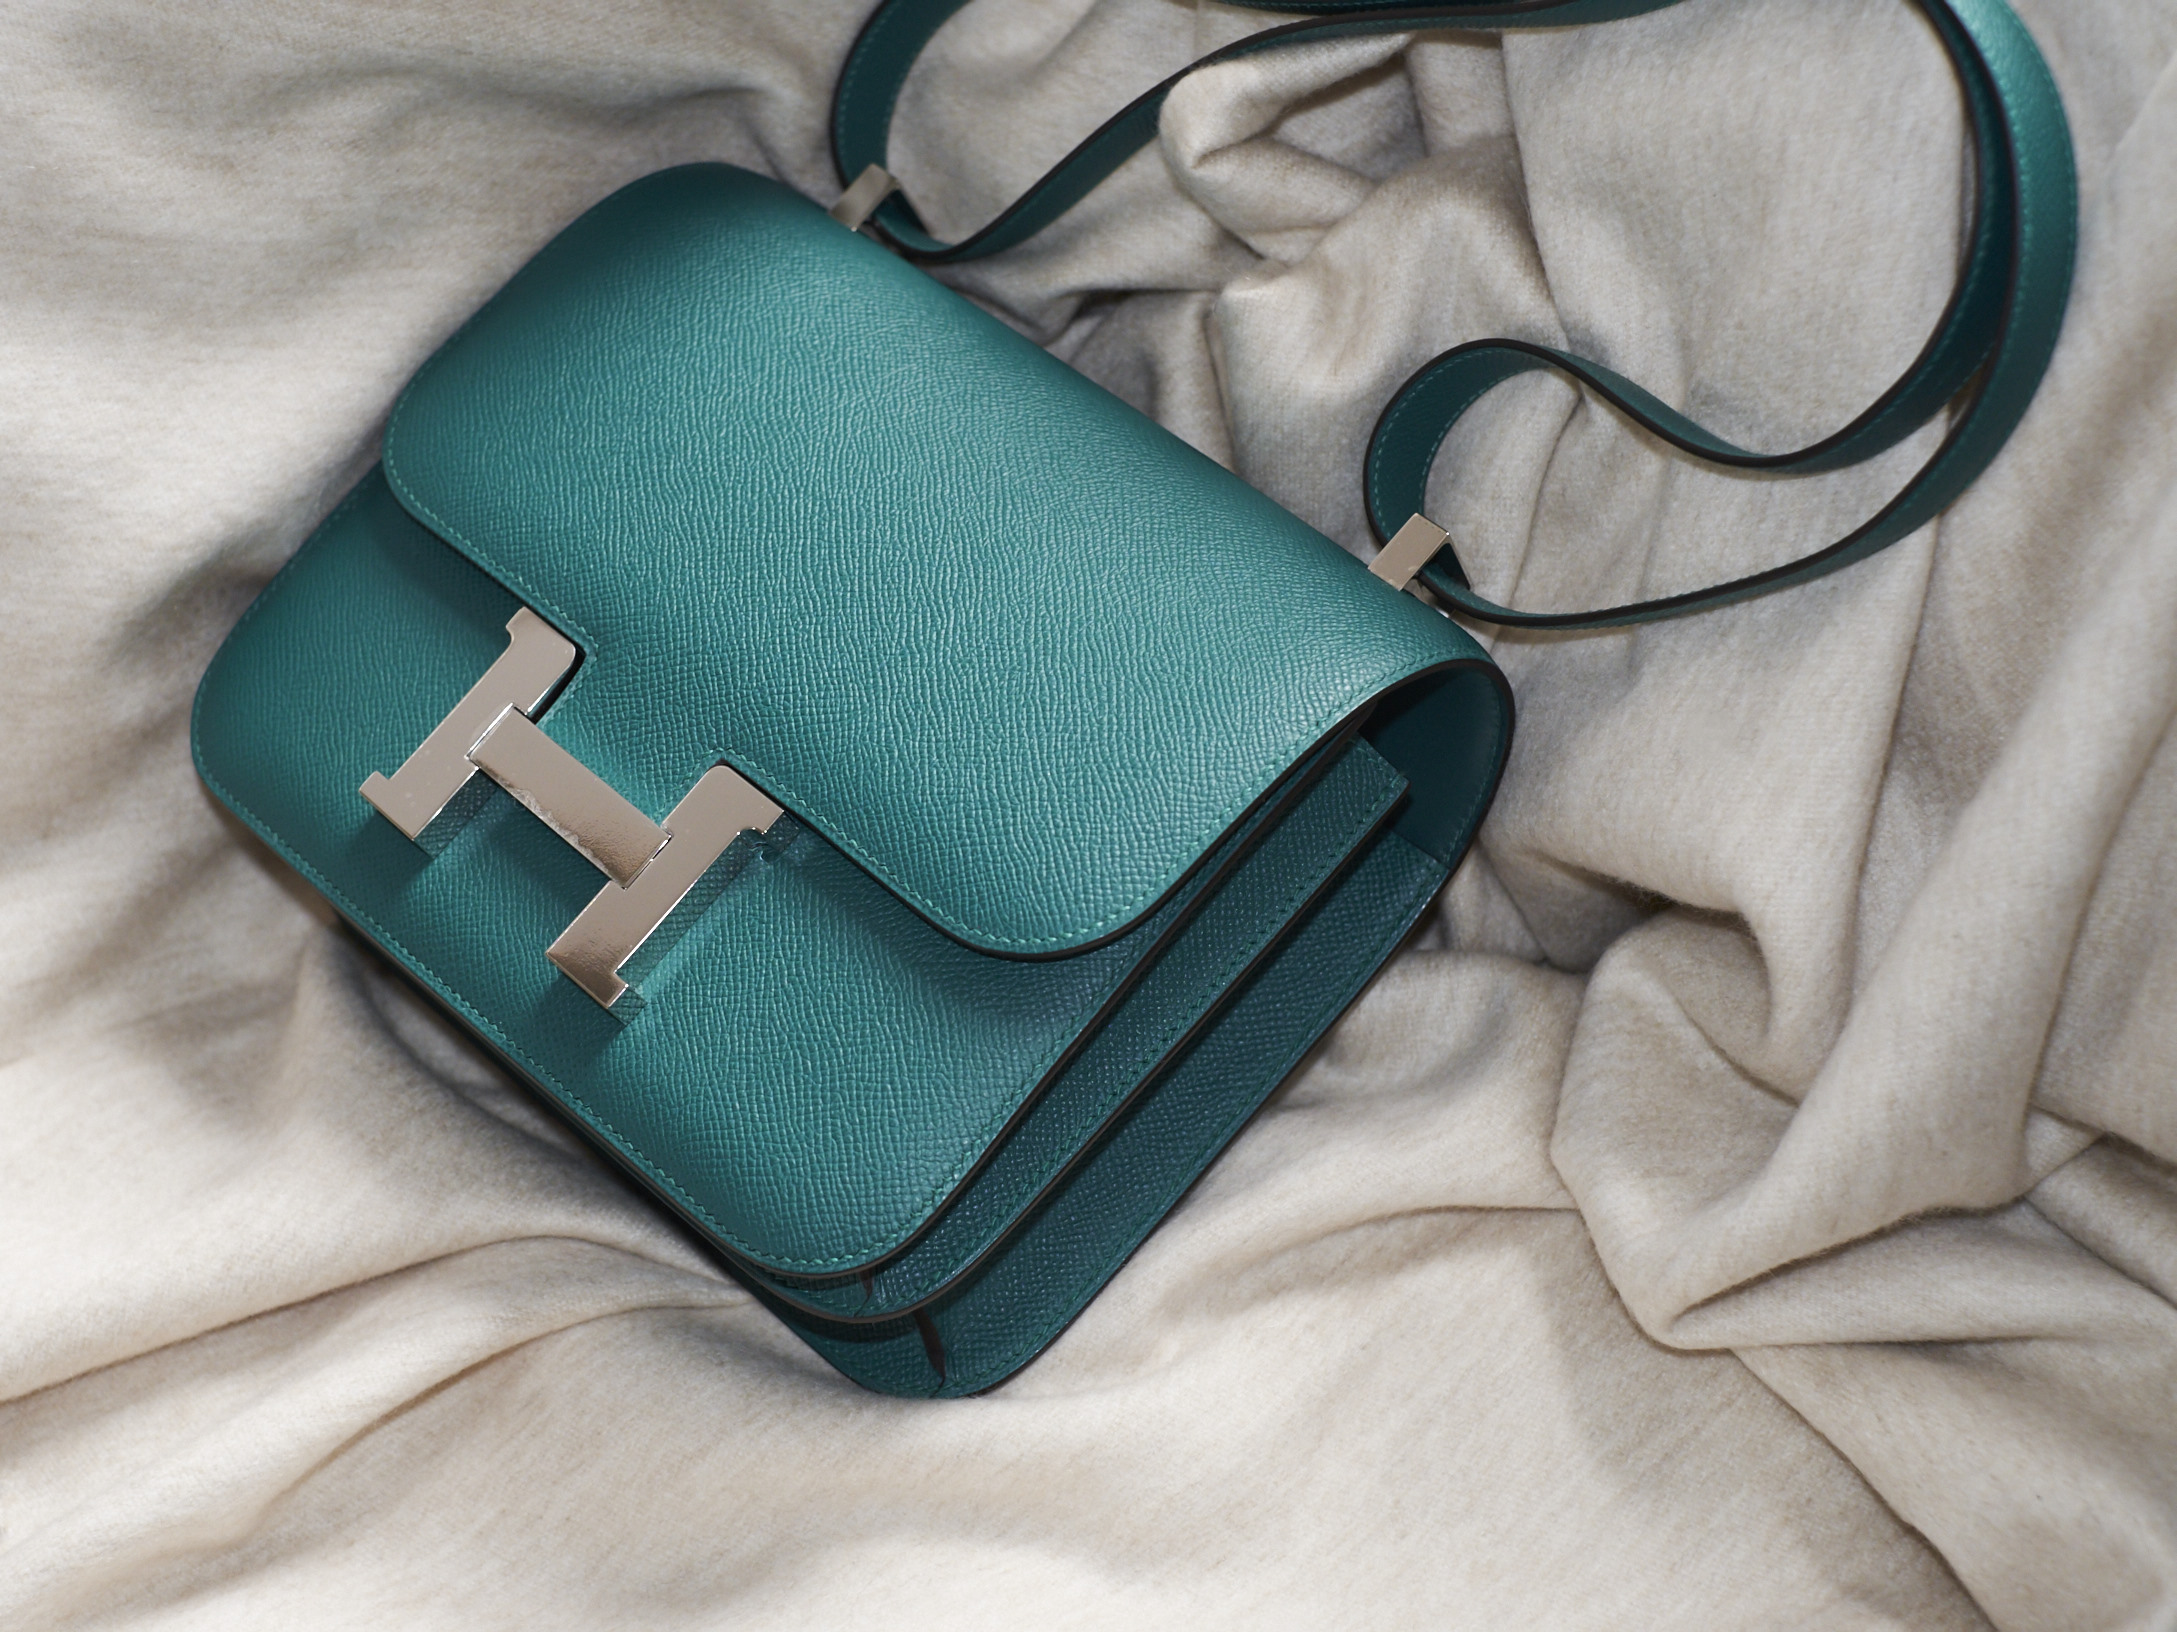 hermes ostrich birkin price - The Complete Guide To Hermes Bag Styles | Bags Of Luxury